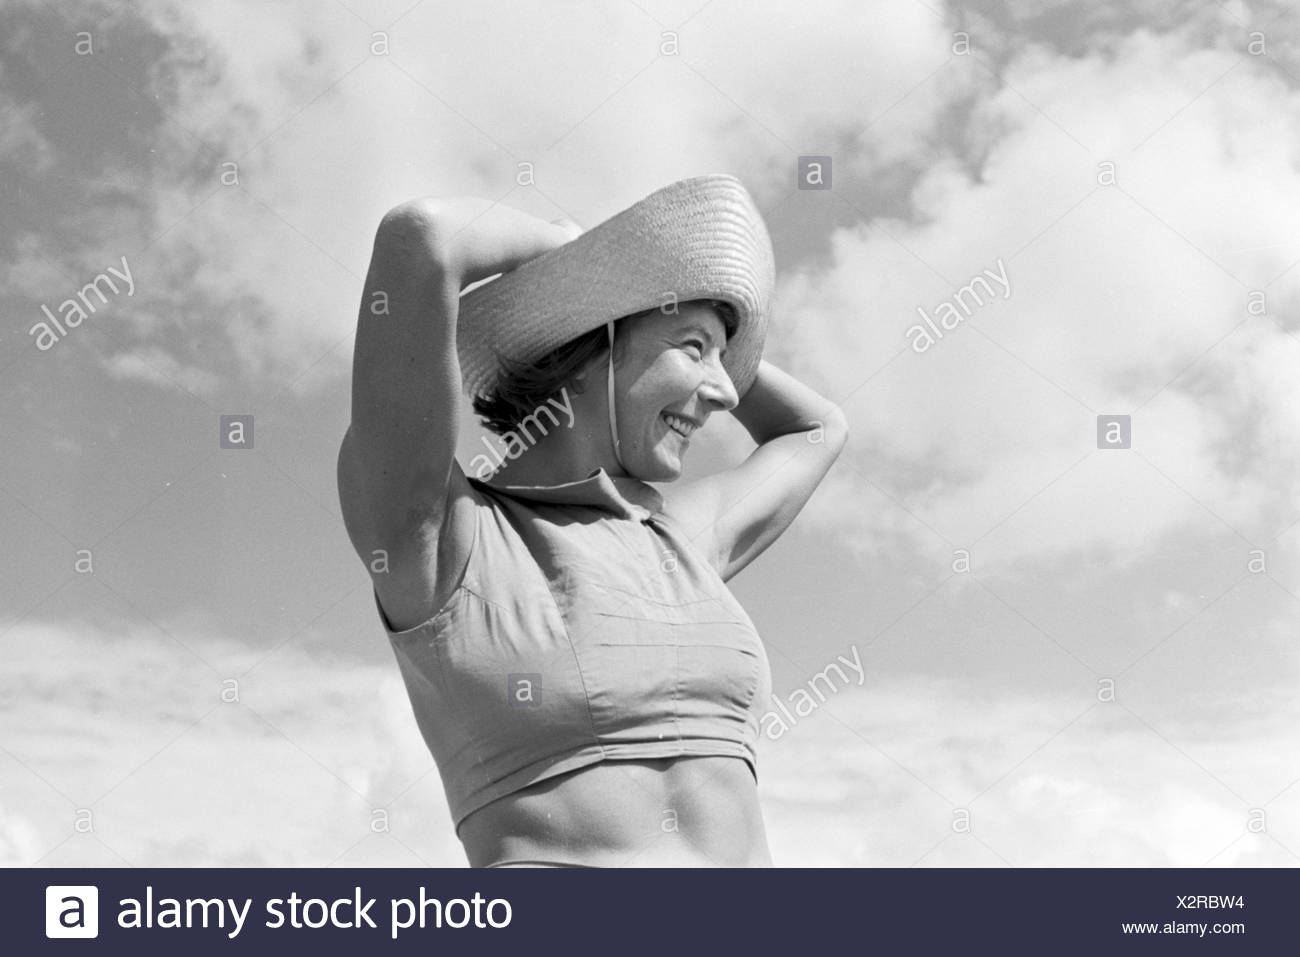 Die berühmte Tänzerin Gret Palucca während Ihrem Sommerurlaub auf Sylt, Deutsches Reich 1930er Jahre. The popular dancer Gret Palucca on vacation on Sylt, Germany 1930s. Stock Photo